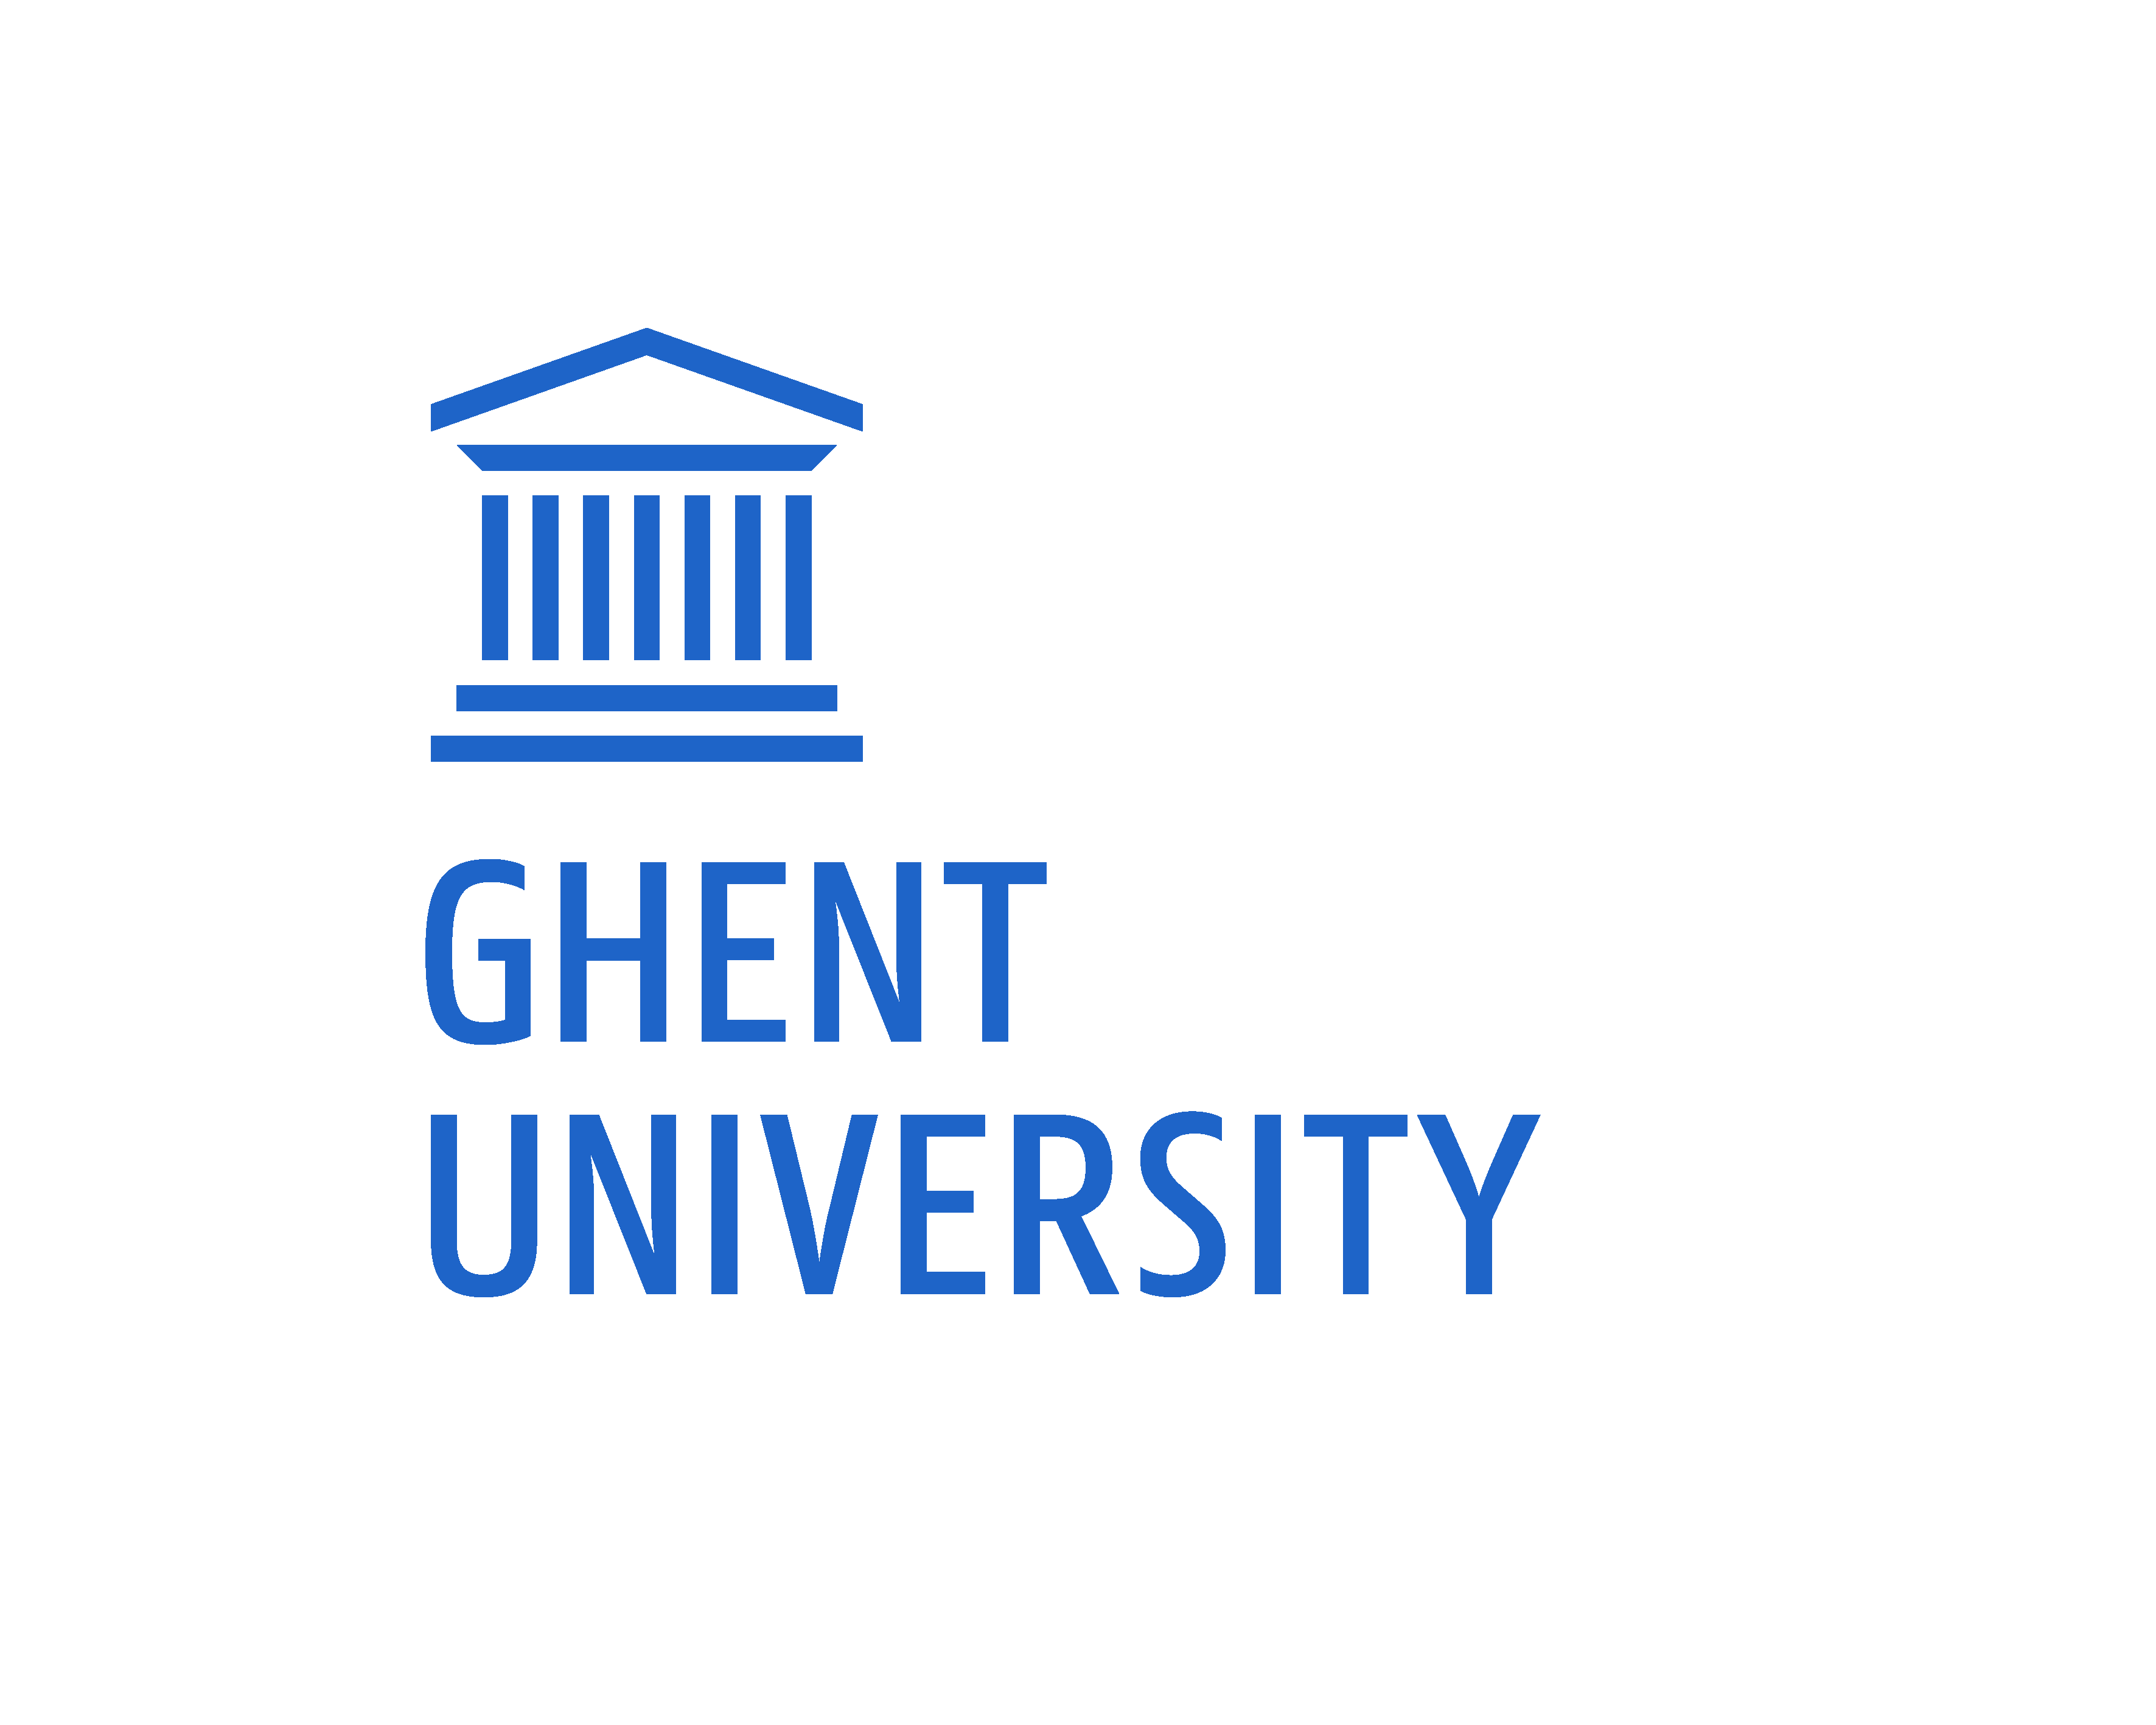 Ghent_University_logo_(English)